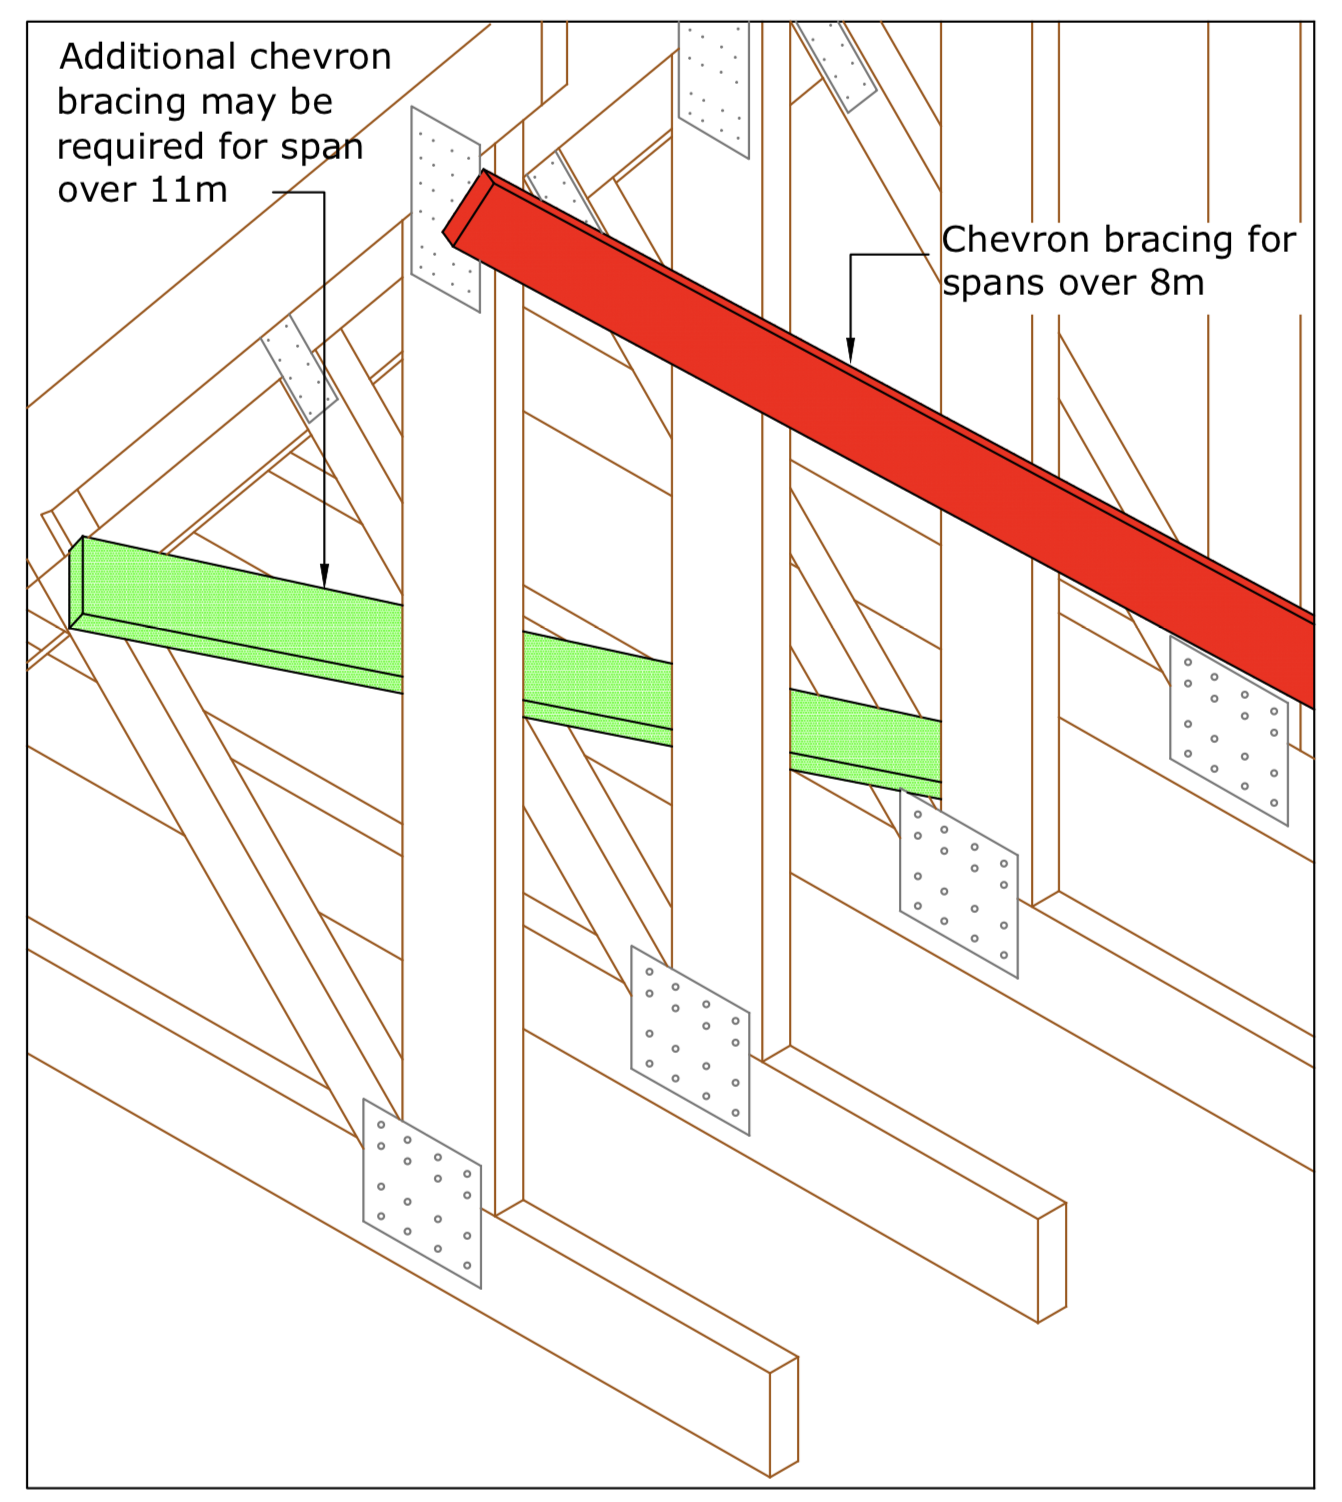 Diagram D10 - Chevron bracing for spans over 8m